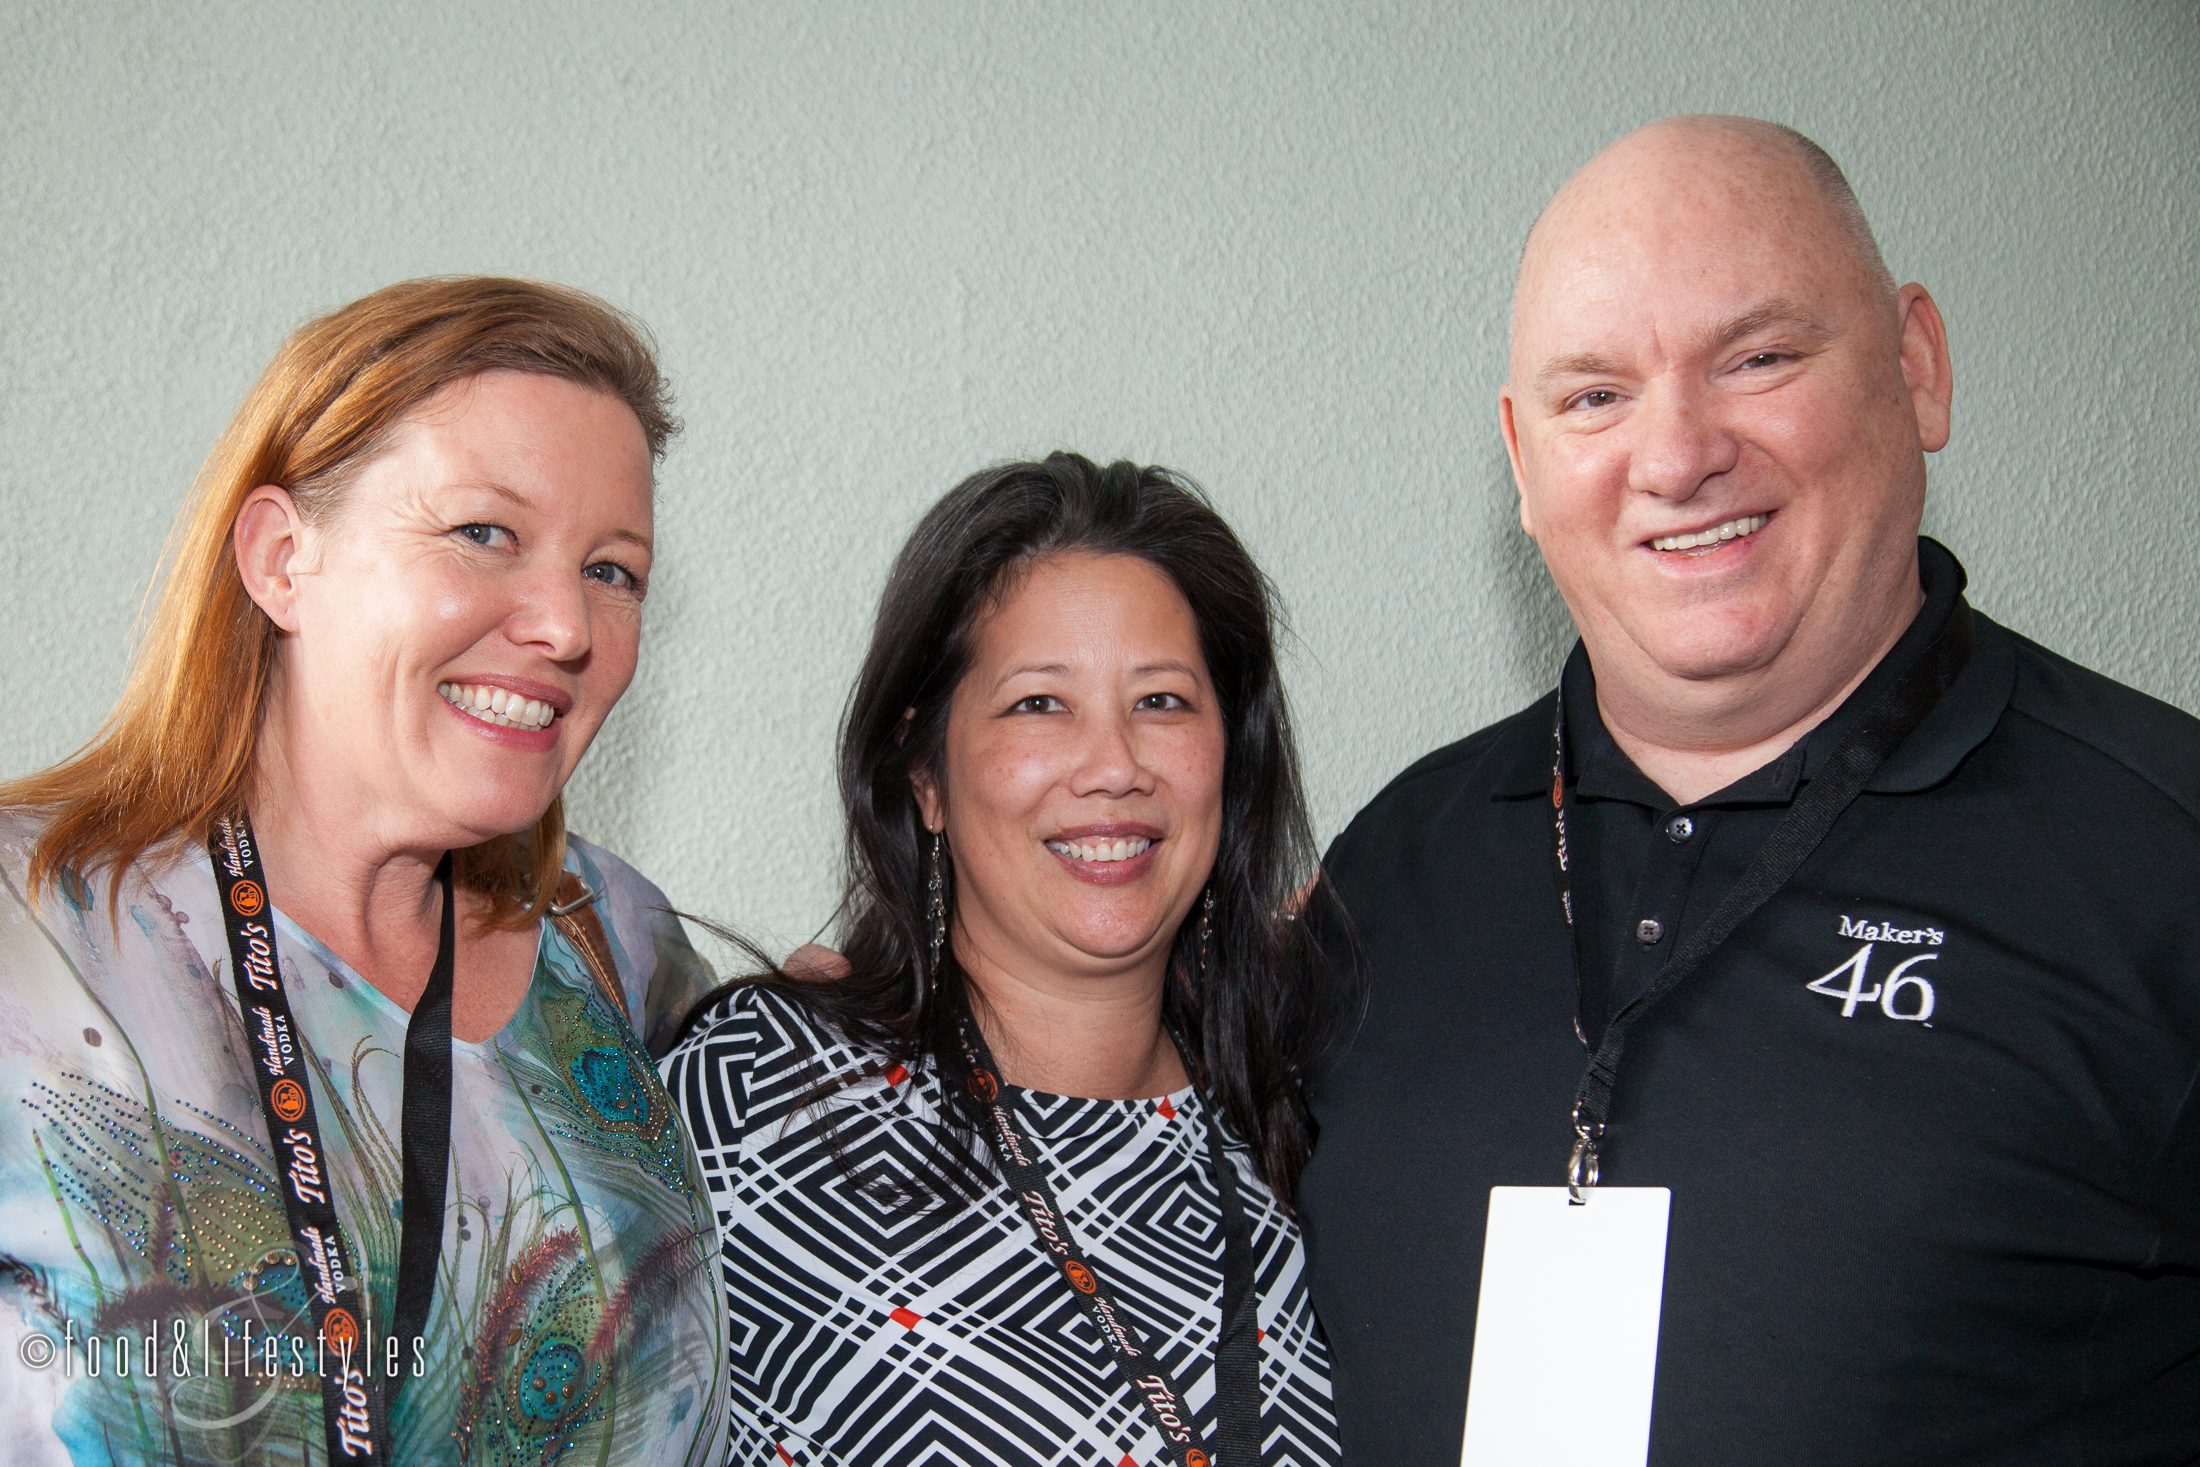 With author and consultant Natalie Bovis of  The Liquid Muse  and Jim Beam mixologist Bobby Gleason.